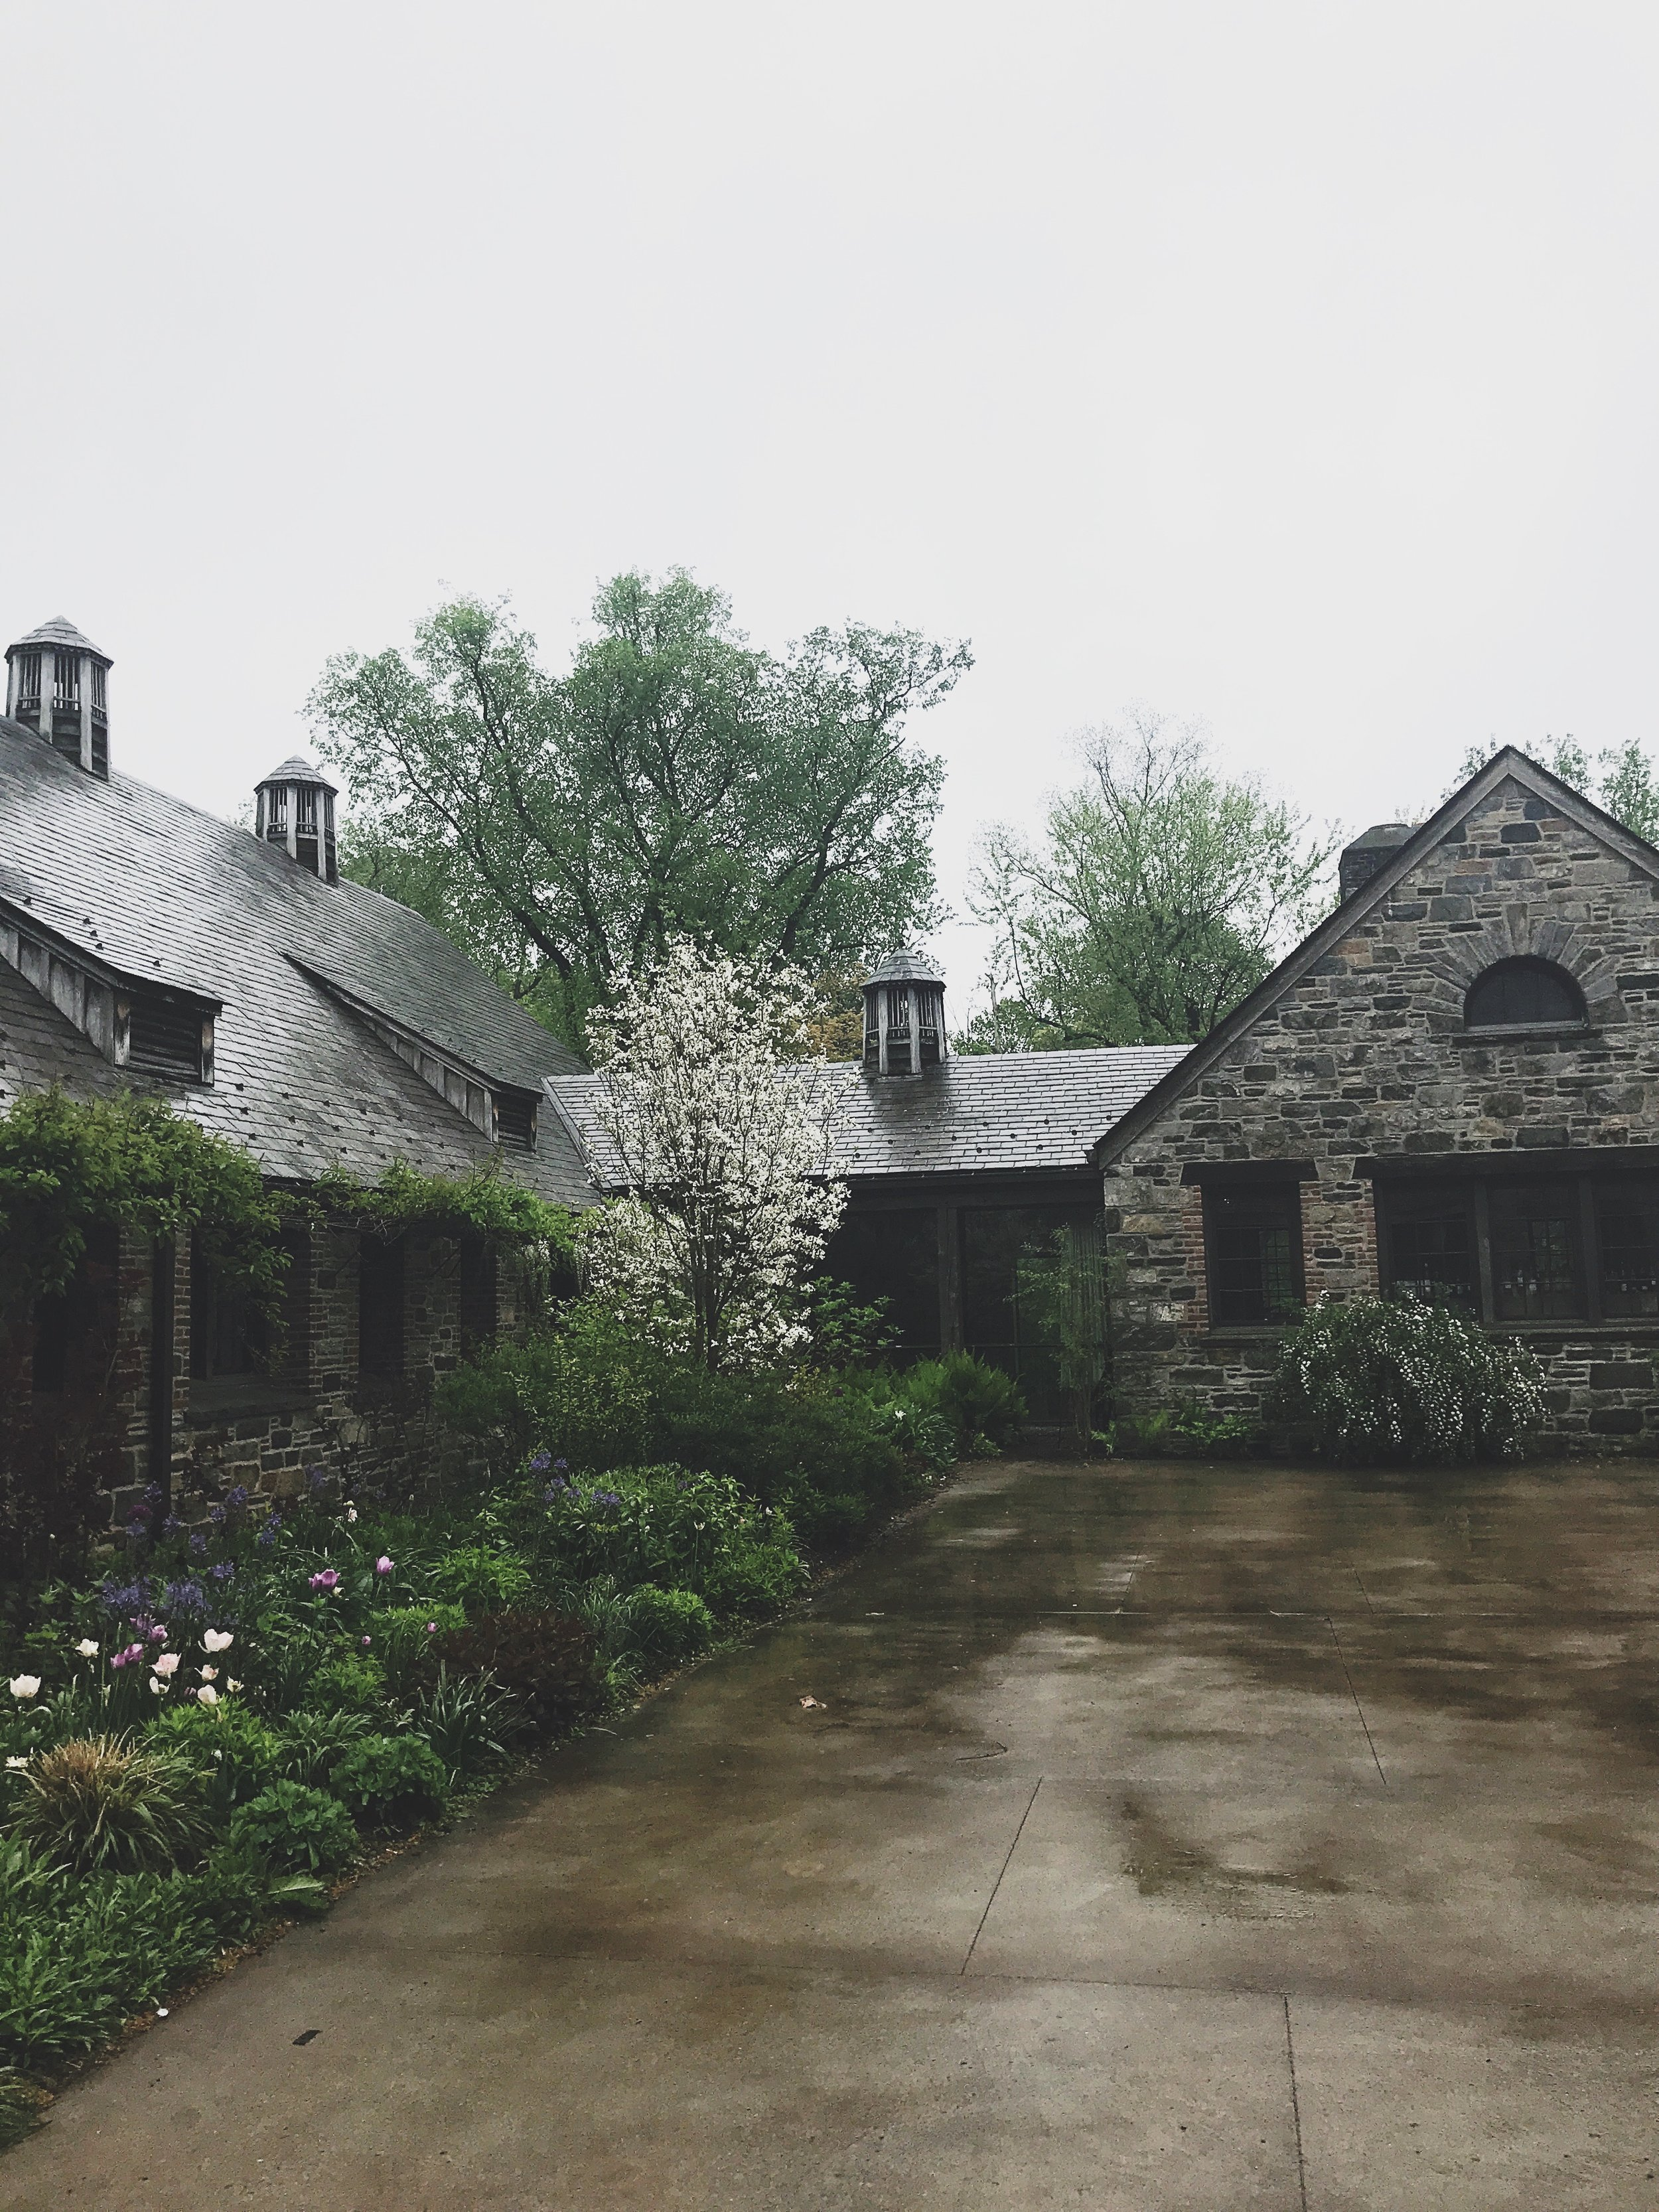 Stone Barns is built in the Normandy Style